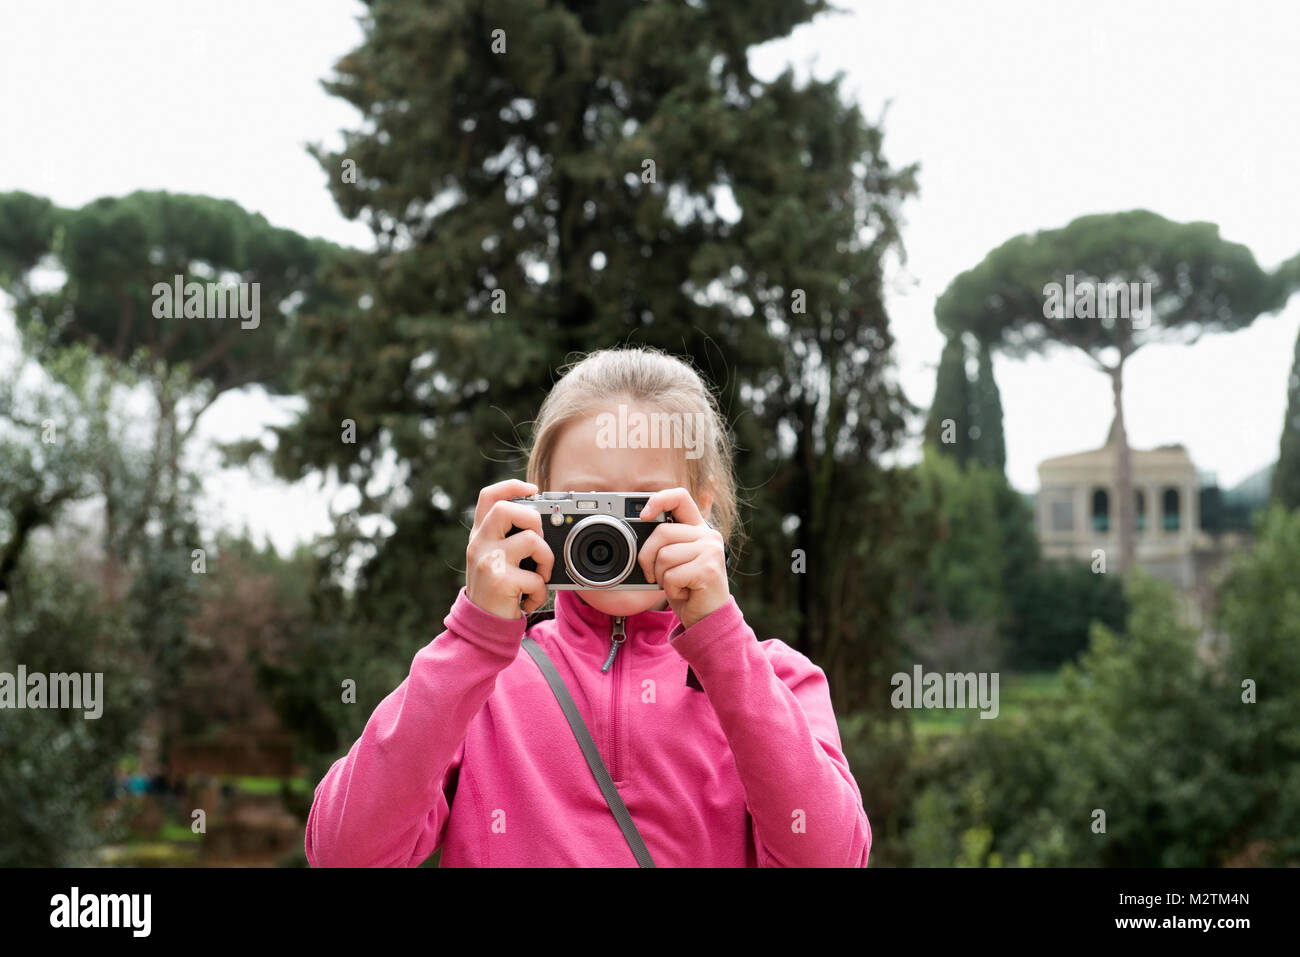 A young girl taking photos - Stock Image